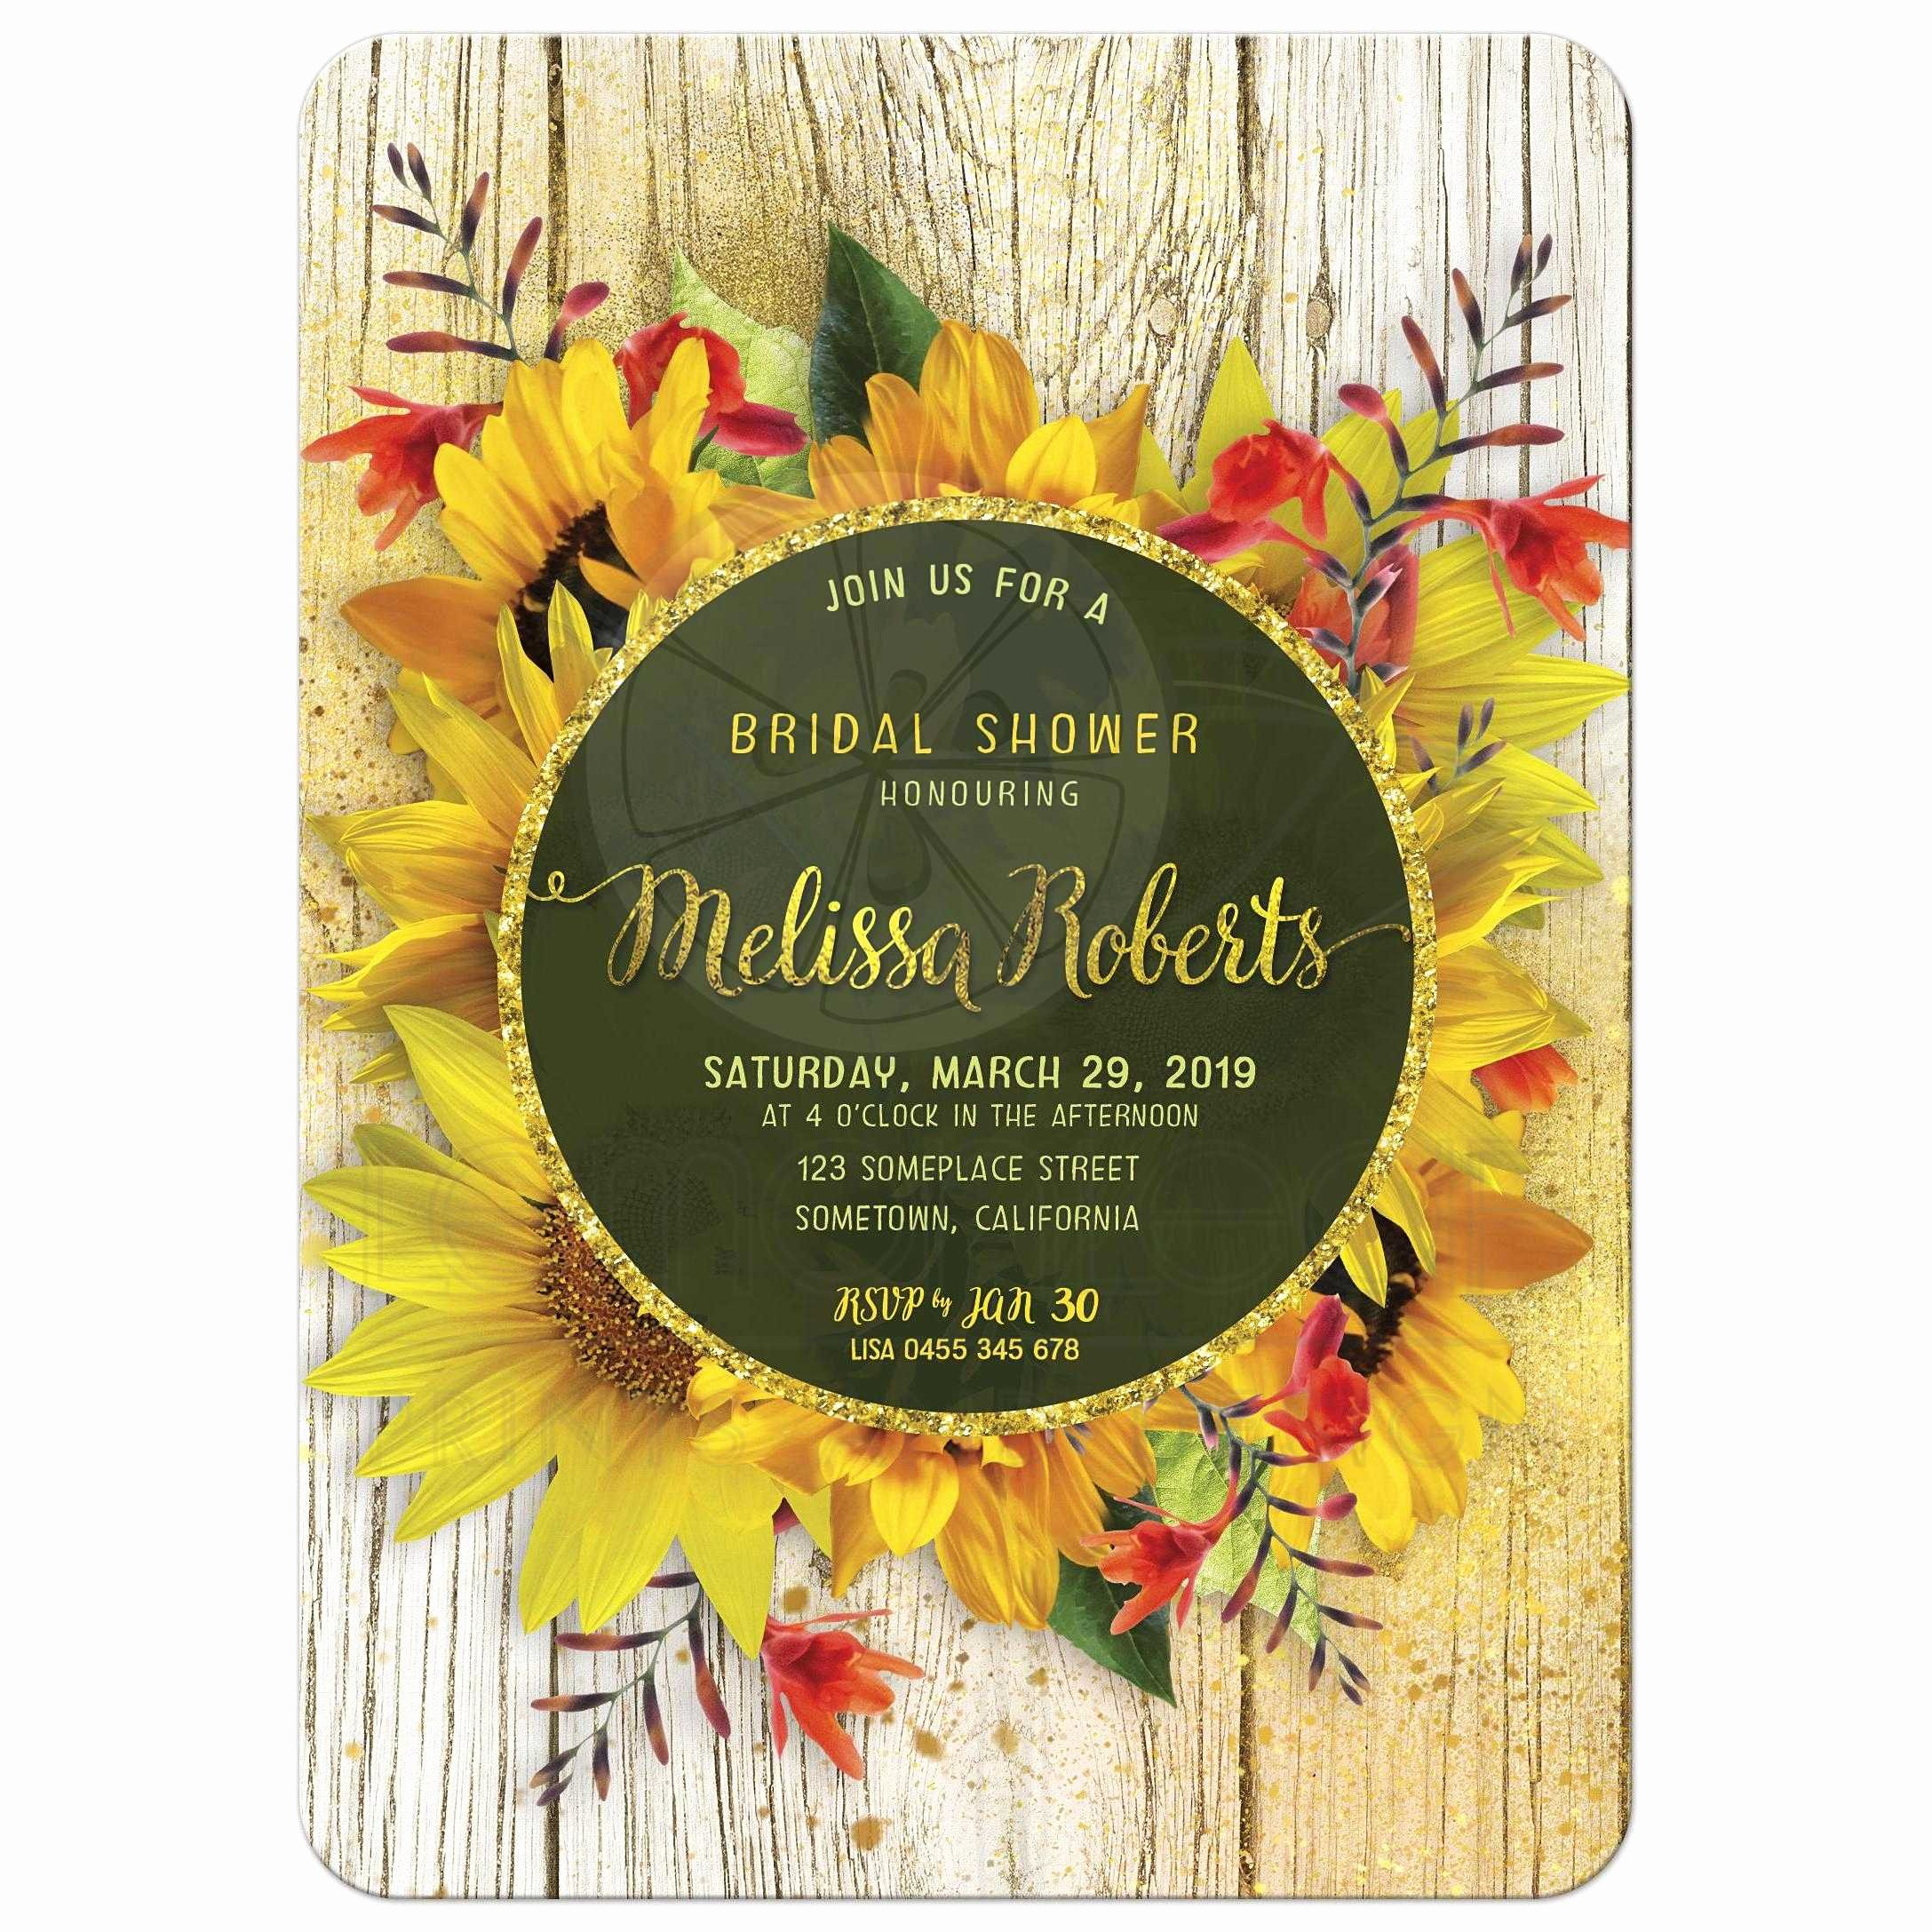 Rustic Sunflower Wedding Invitations Fresh Rustic Sunflower Bridal Shower Invitation